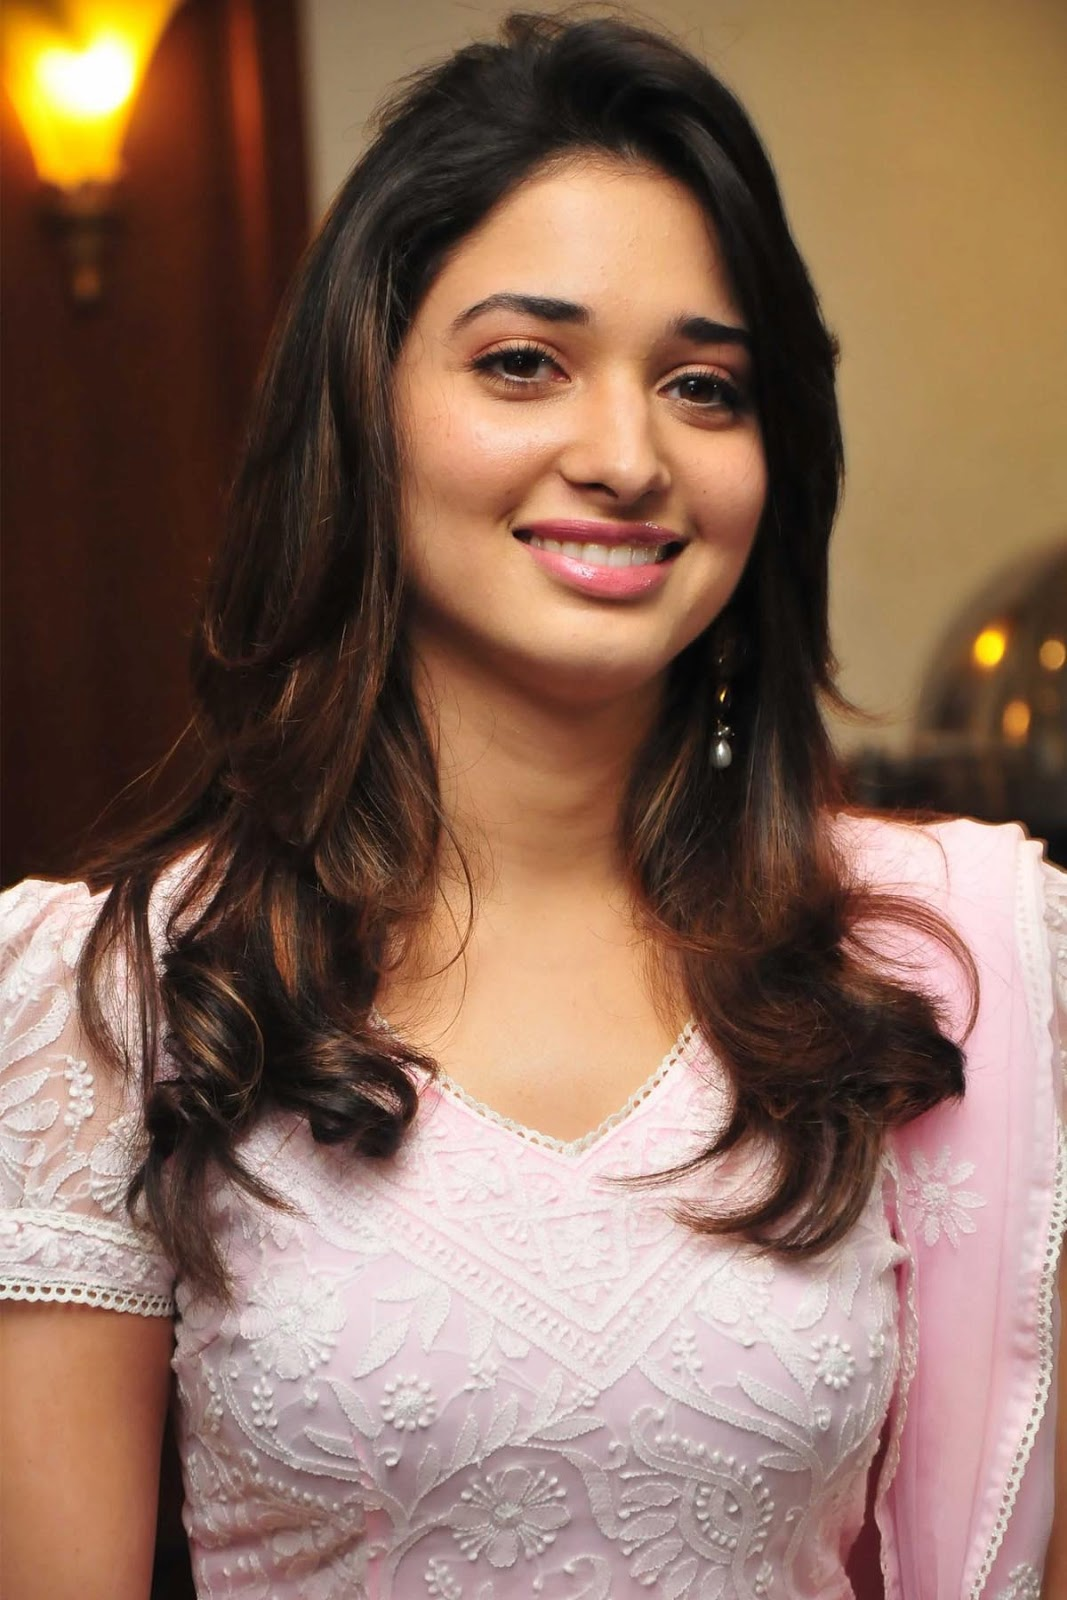 tamanna latest hd wallpapers 1200x1600 | hd wallpapers (high